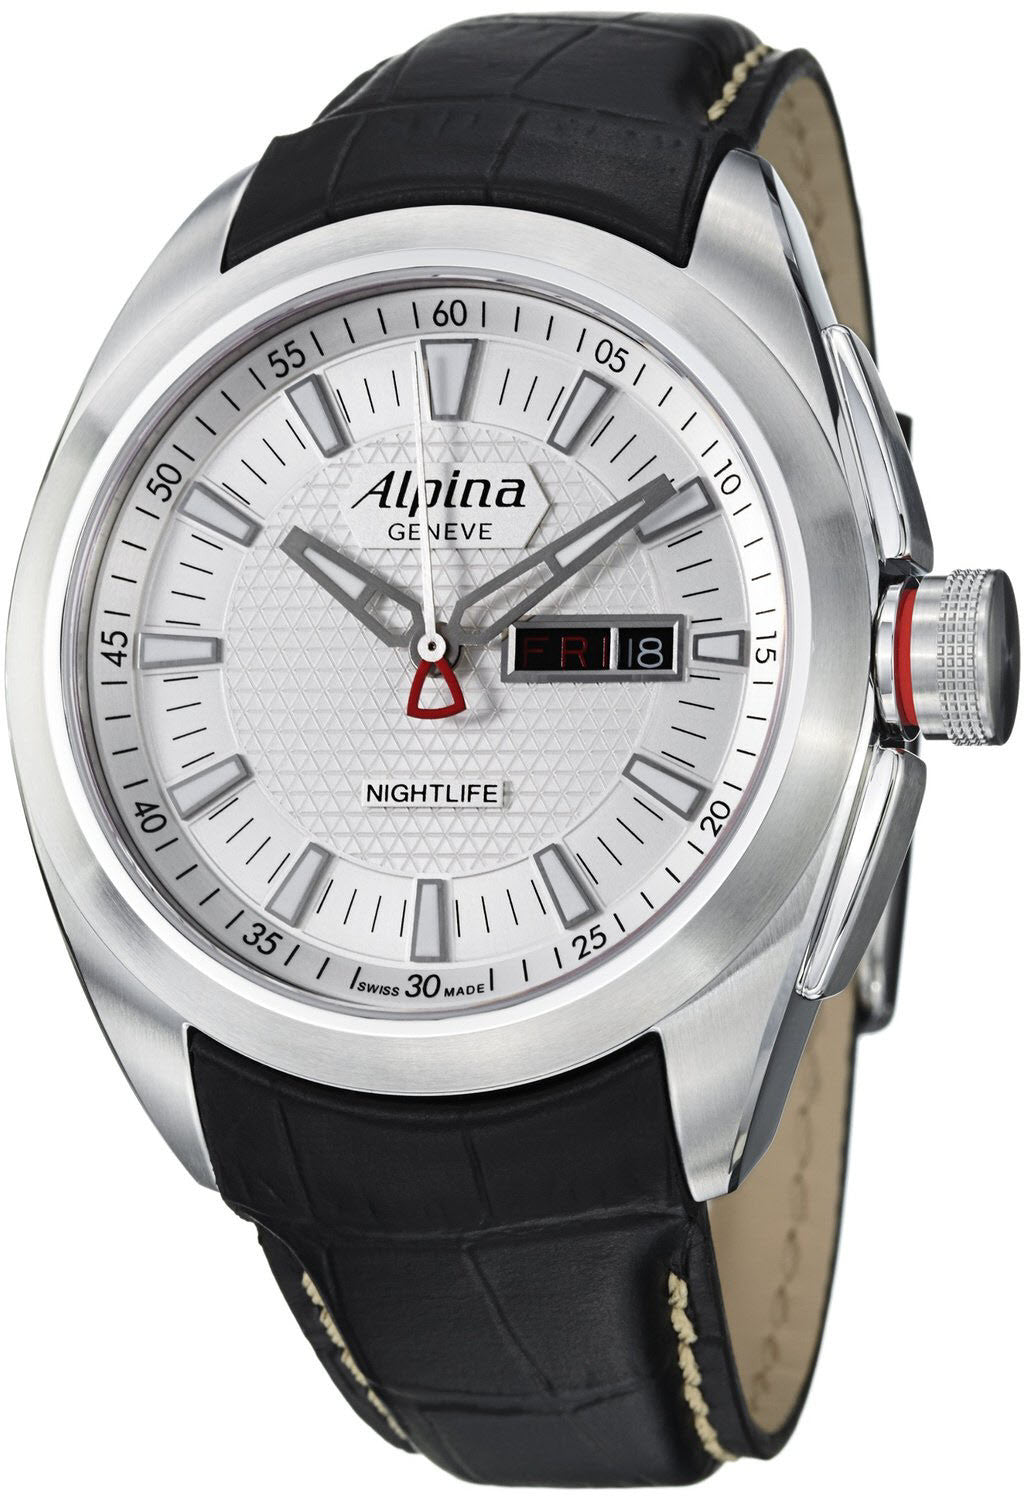 Alpina Club Day Date